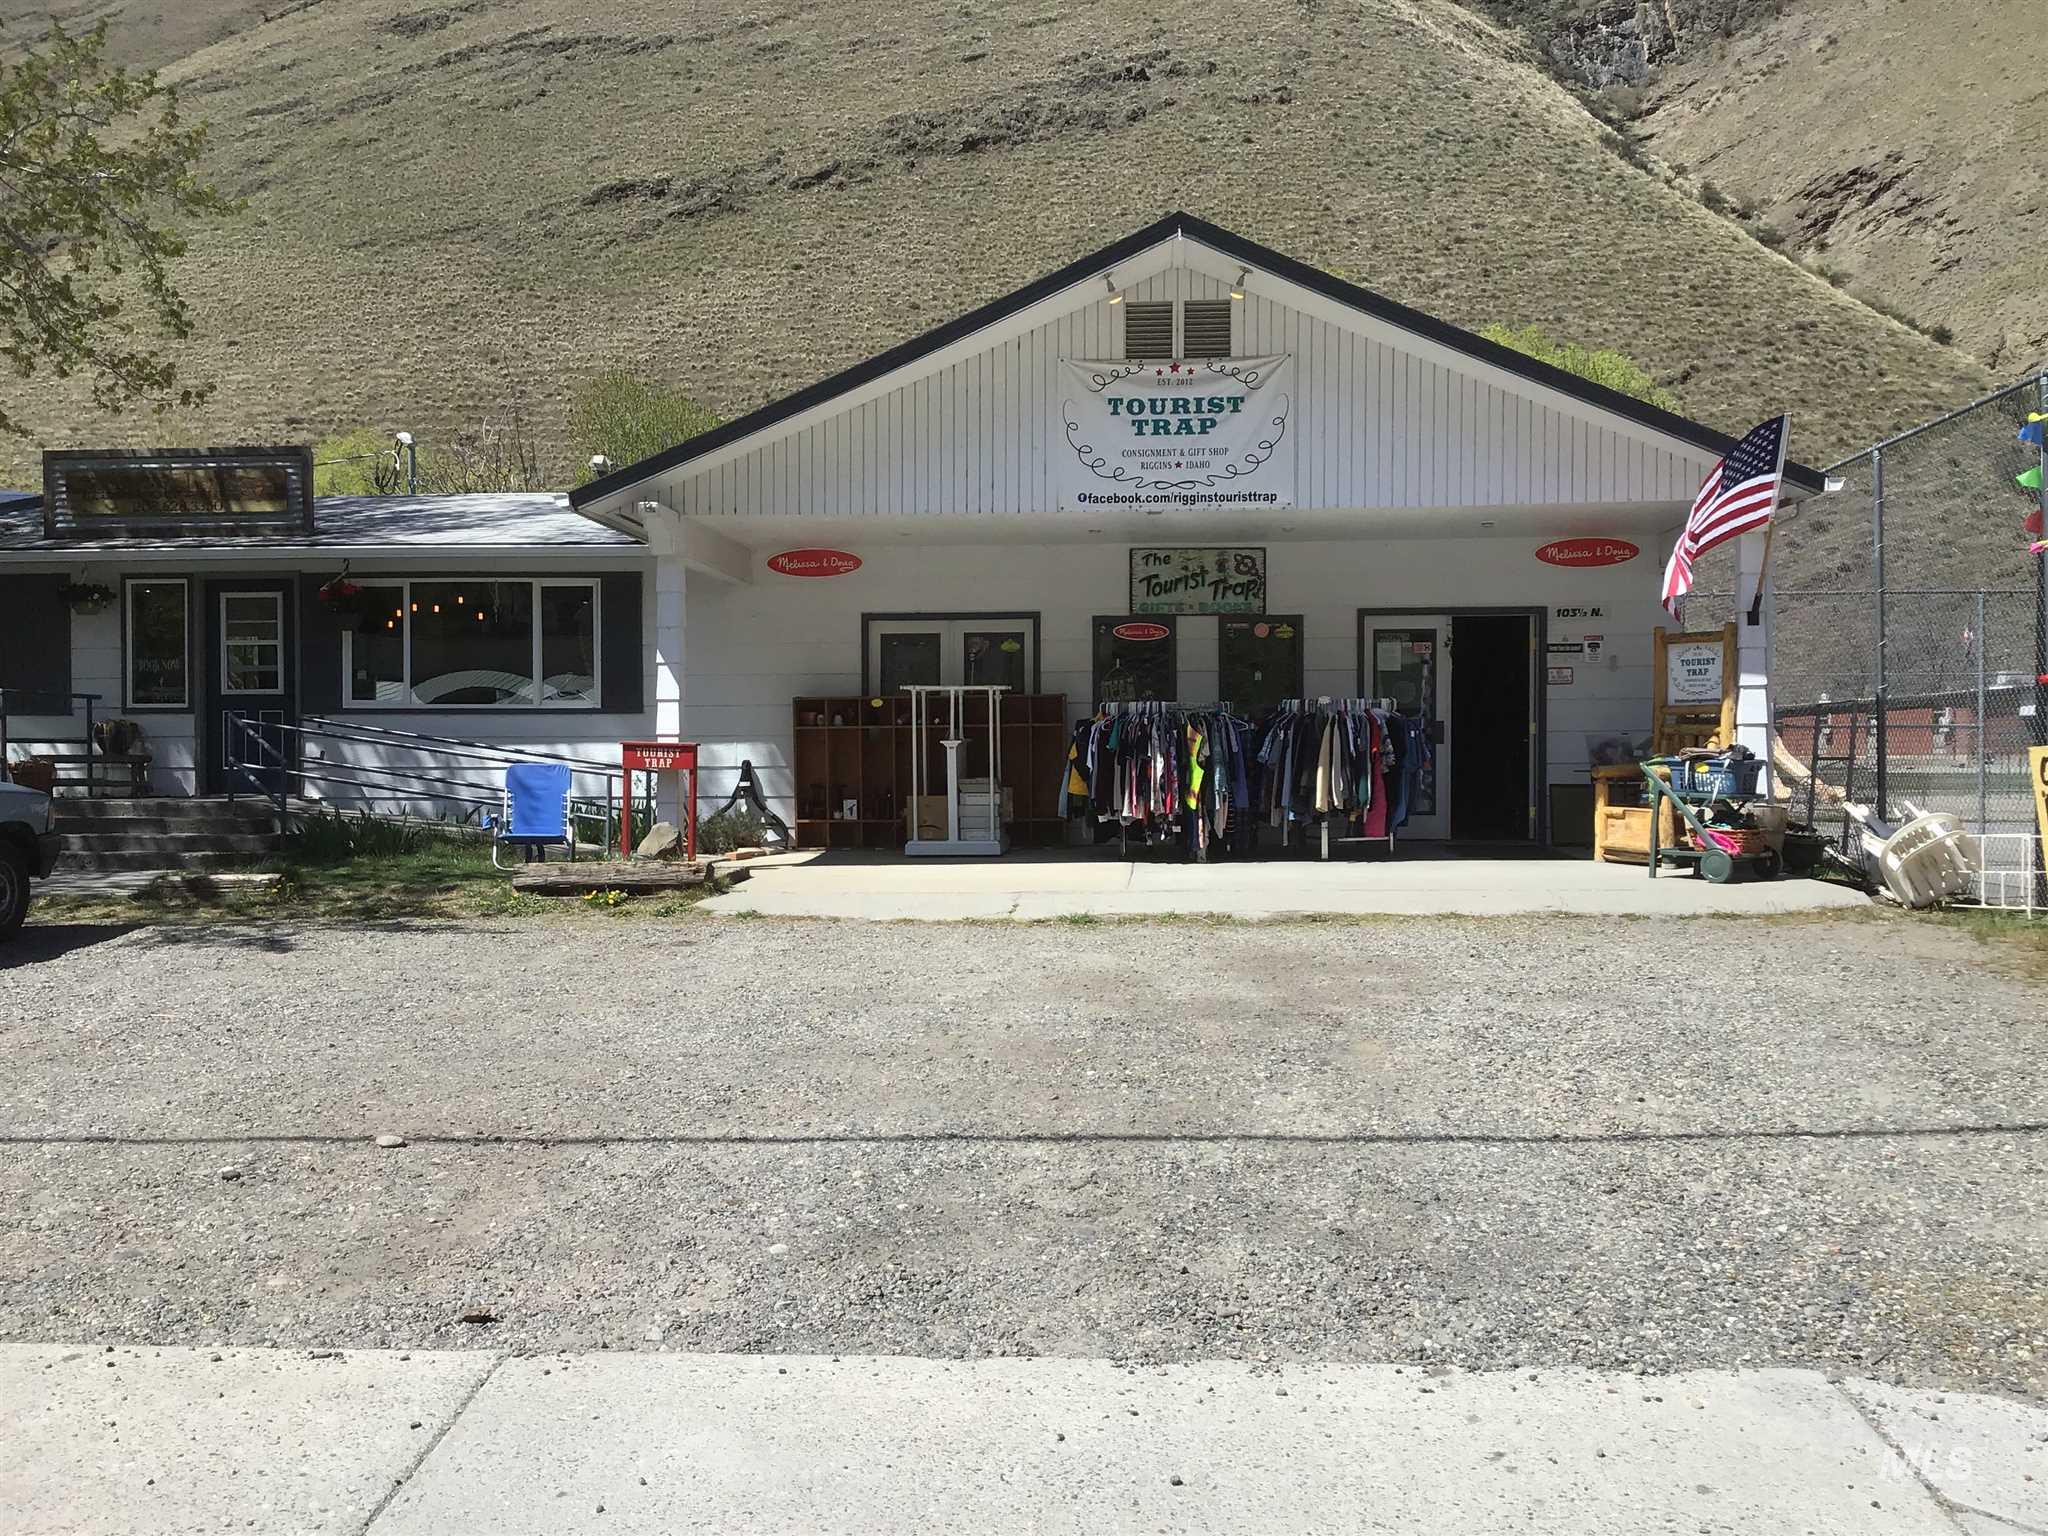 103 N Main Property Photo - Riggins, ID real estate listing